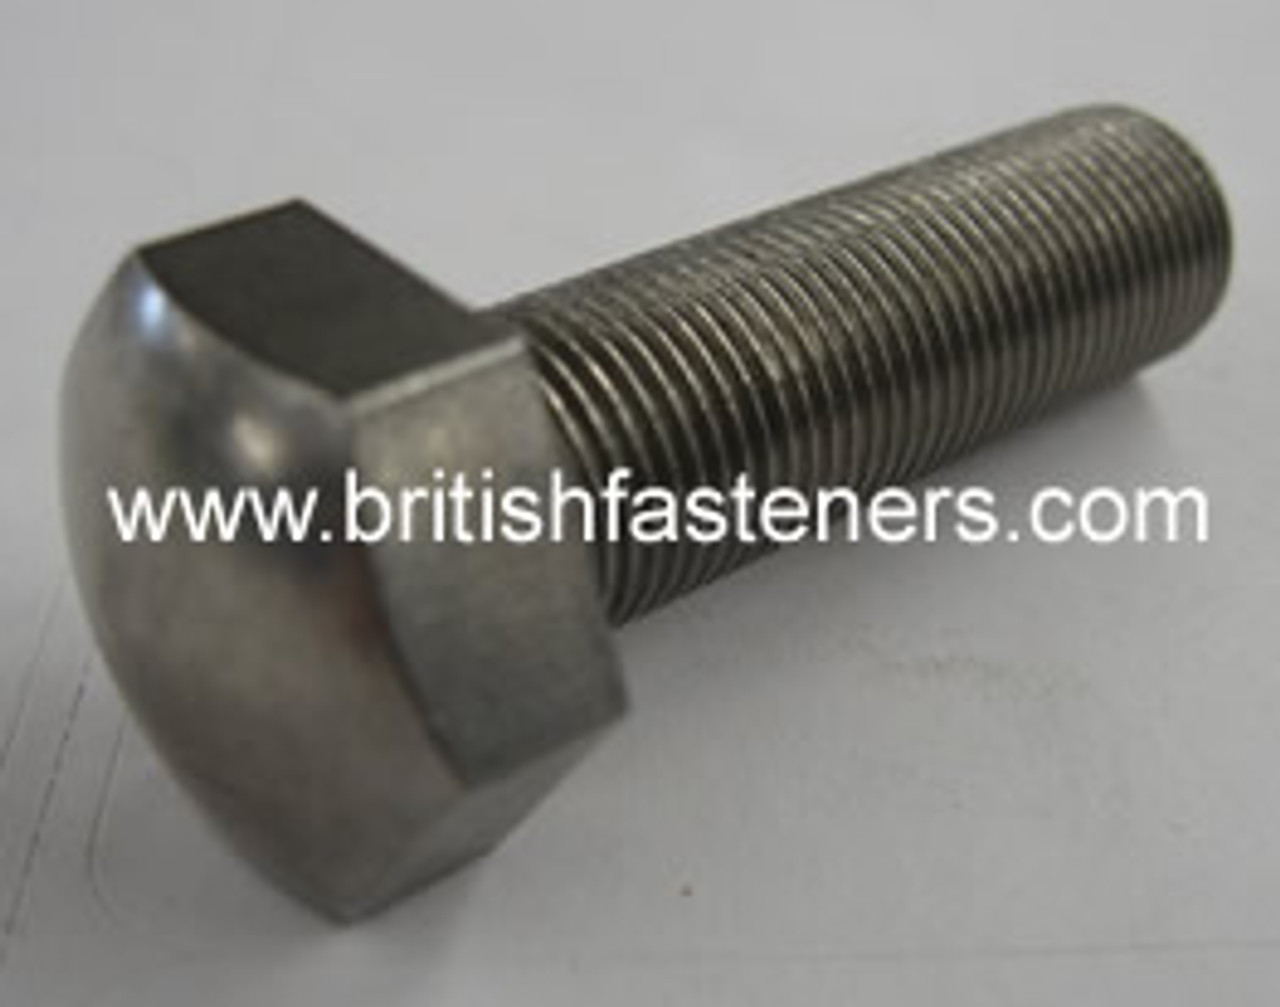 BSF Stainless BOLT DOMED 5/16 x 3/4 - (6500)